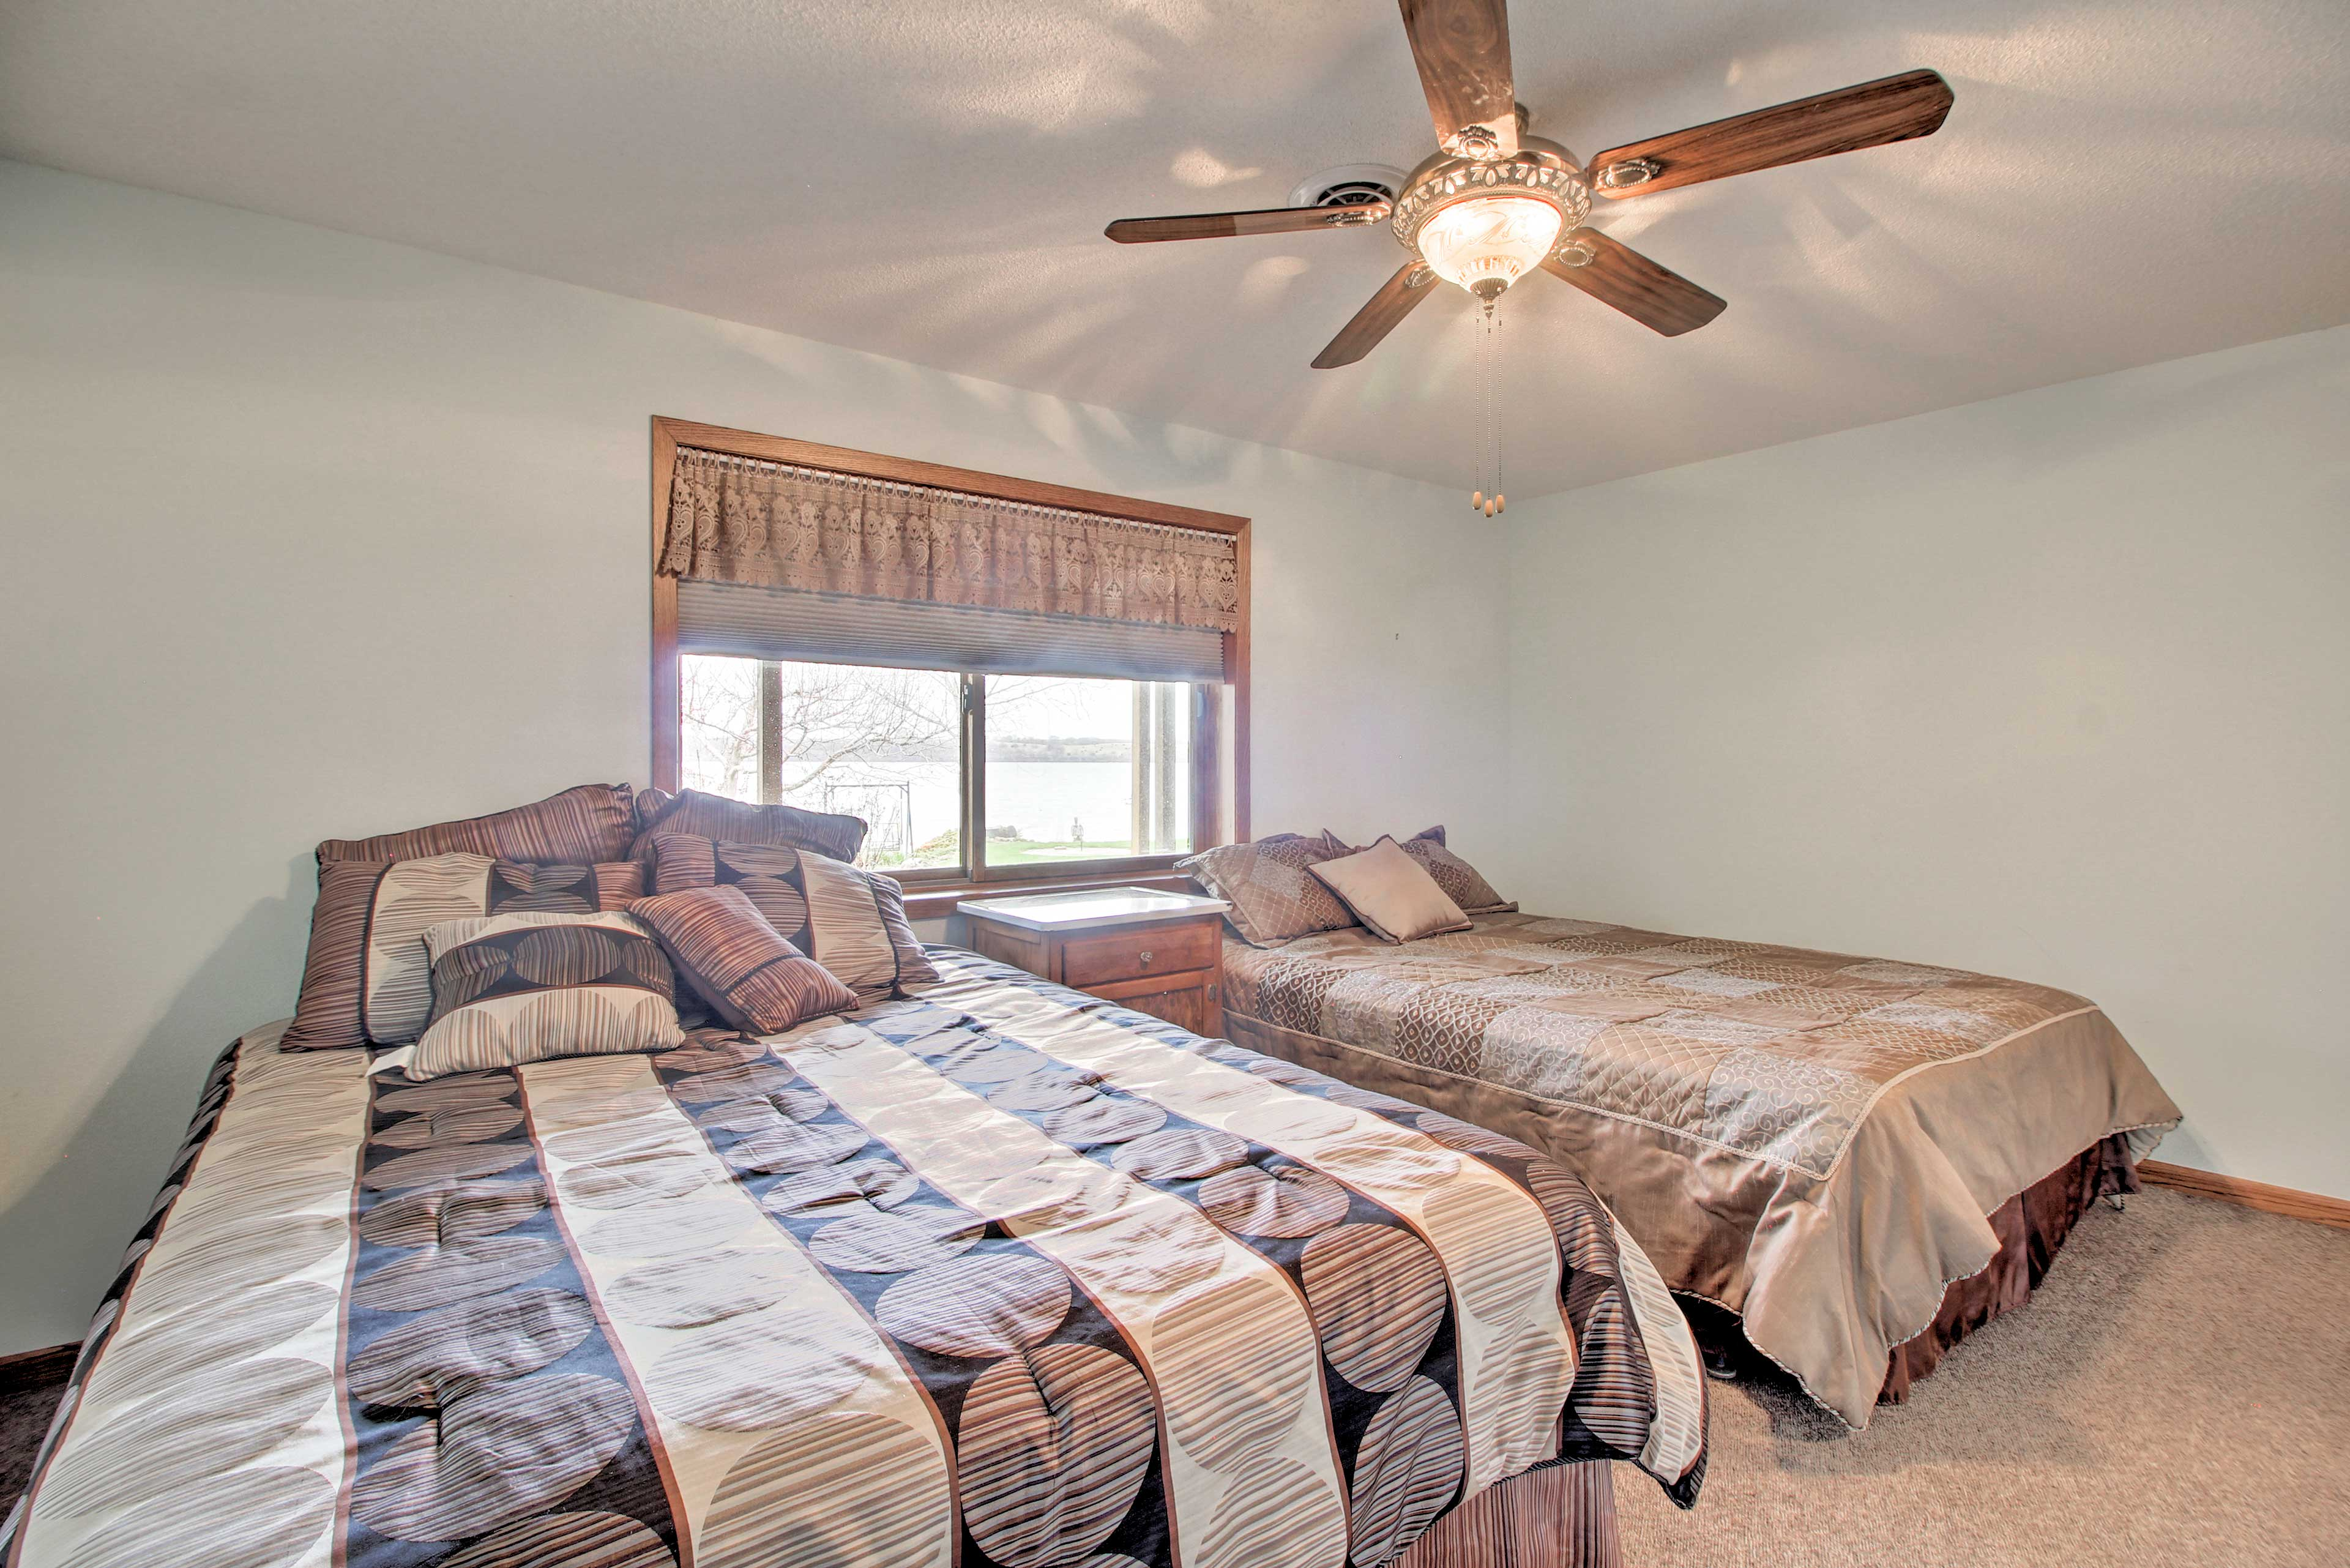 Up to 4 guests can stay in these 2 queen beds.